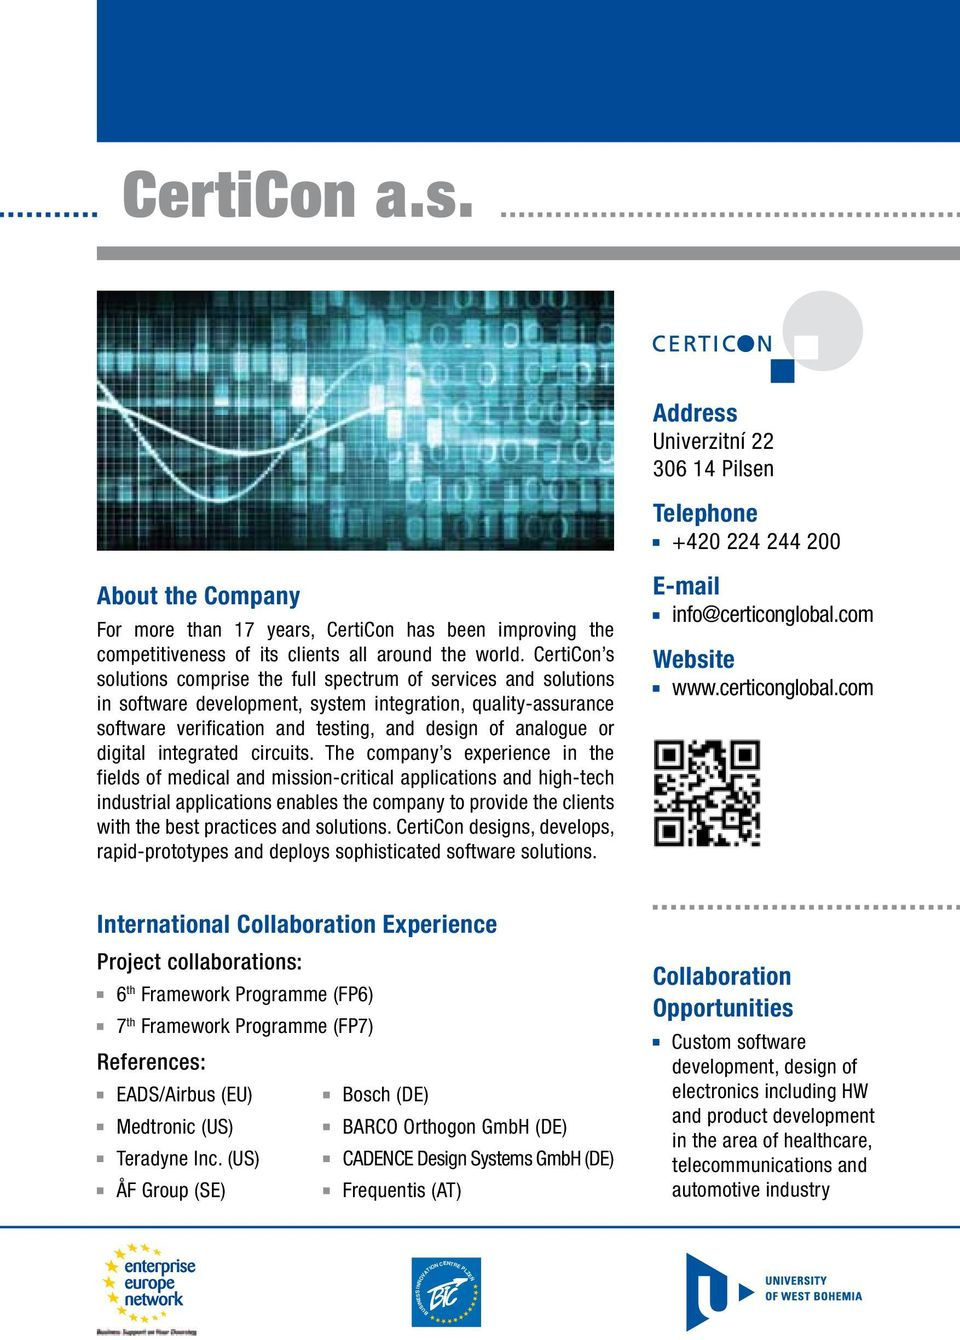 CertiCon s solutions comprise the full spectrum of services and solutions in software development, system integration, quality-assurance software verification and testing, and design of analogue or